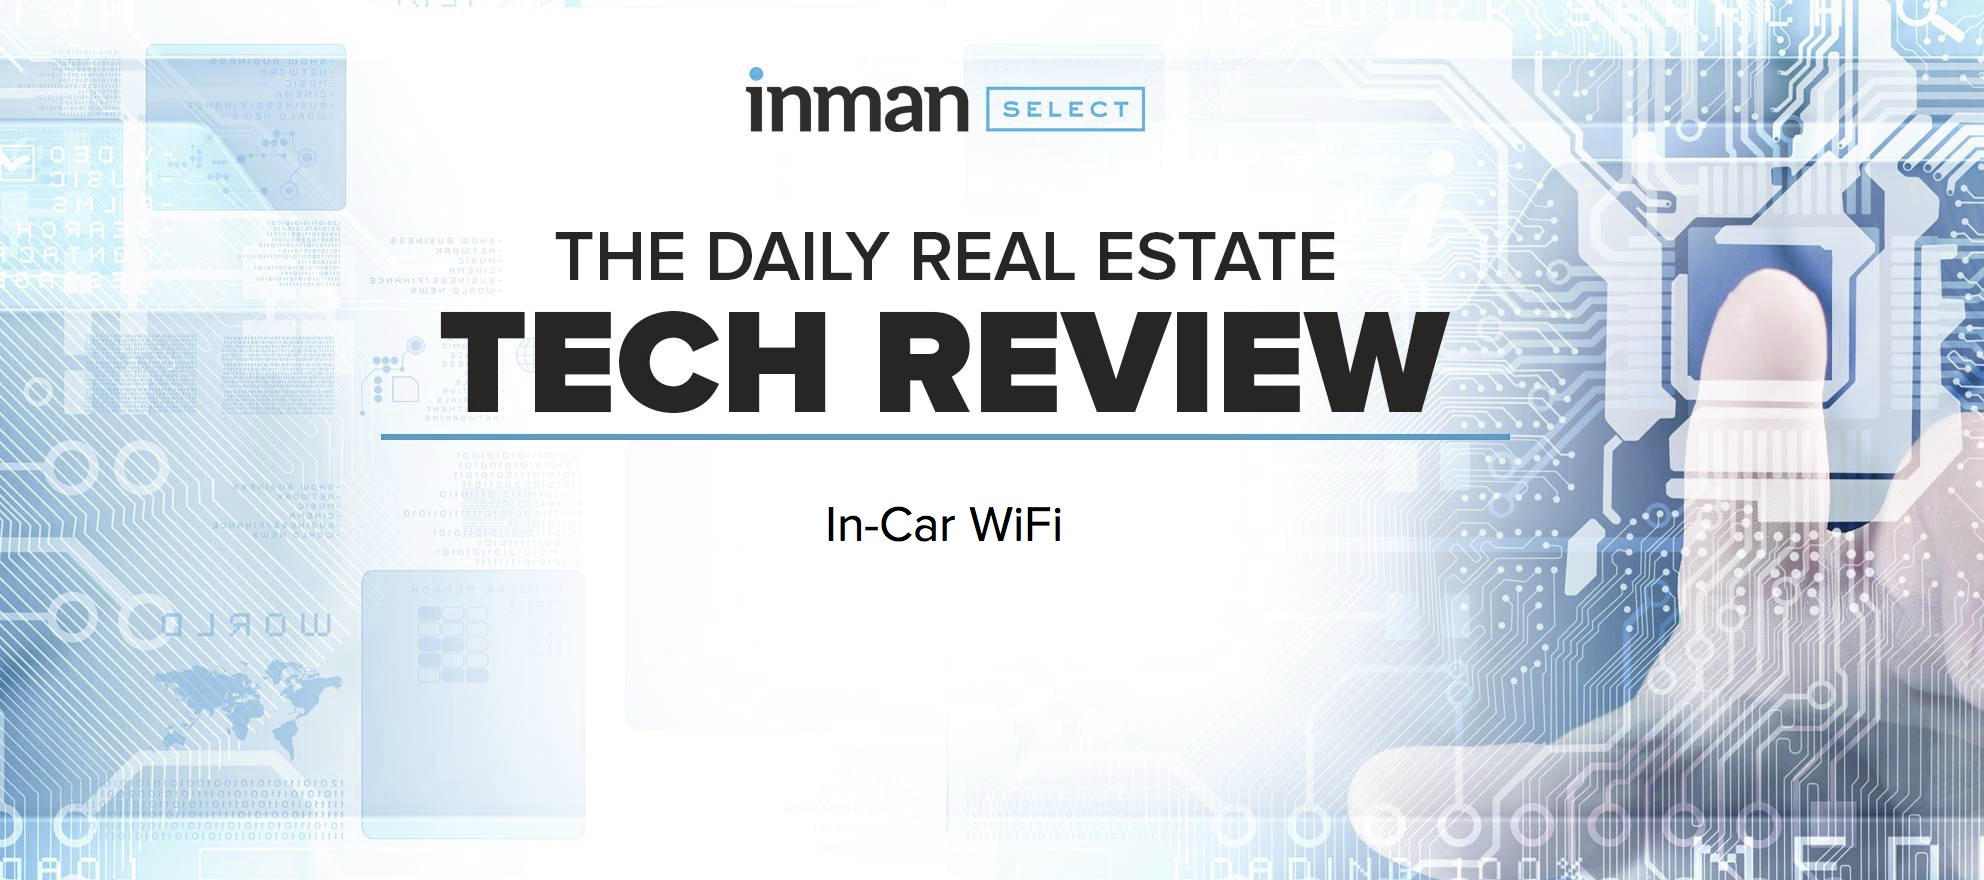 4 ways real estate agents can win the deal with in-car Wi-Fi